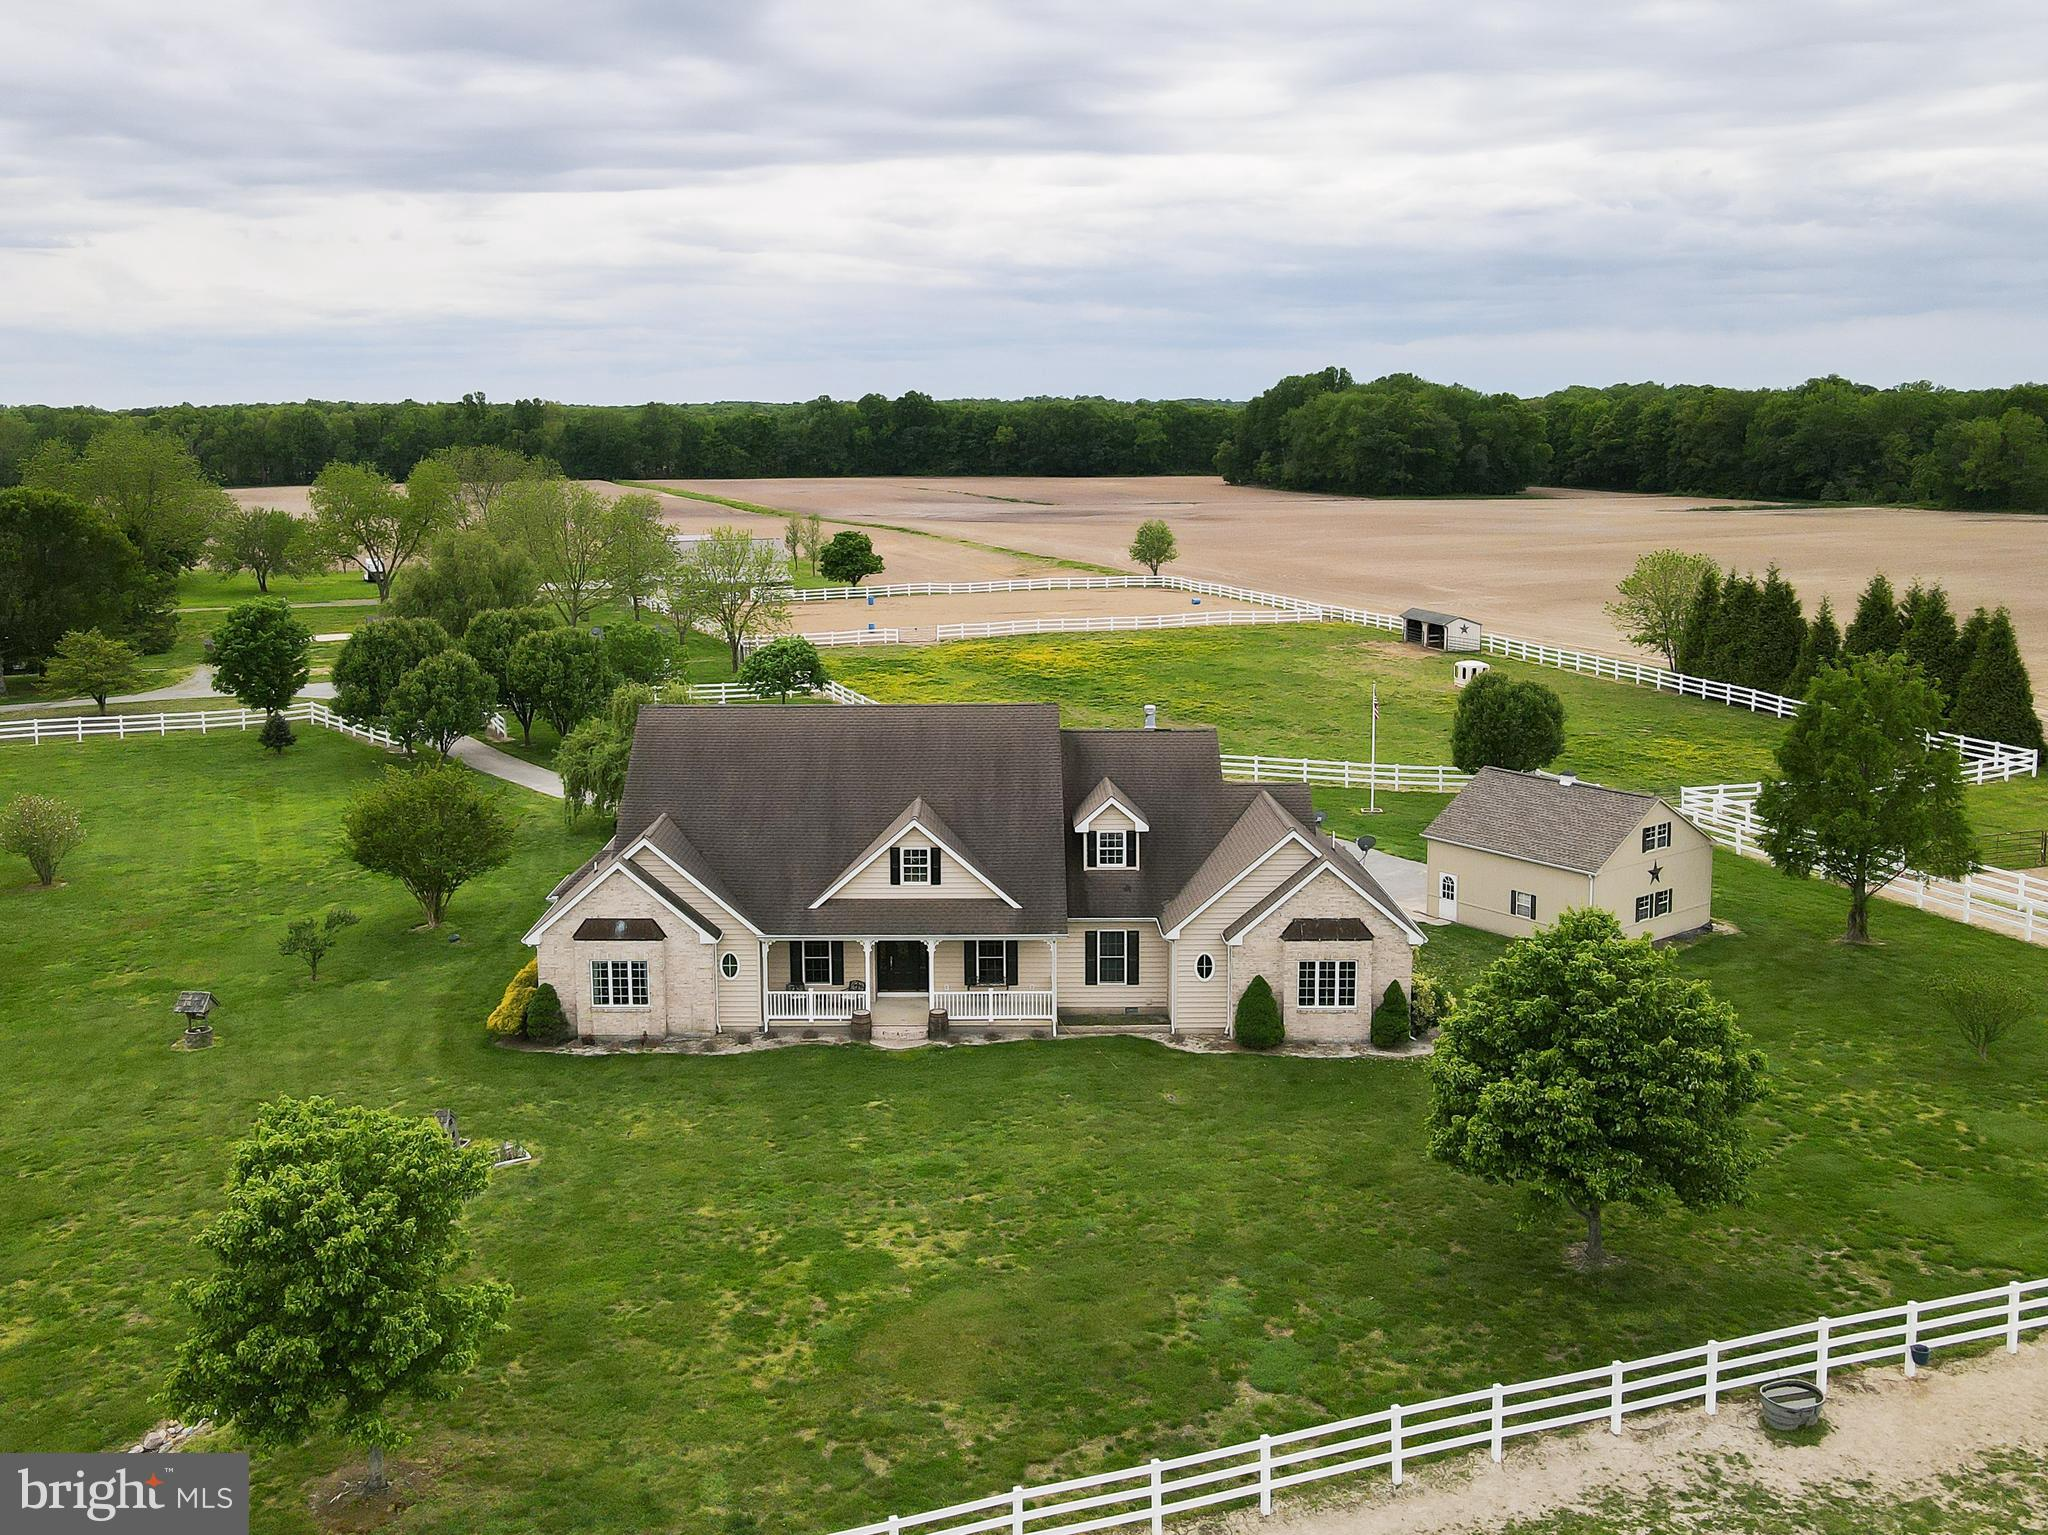 """Bring your horses to this incredible tree lined estate that leads to a beautiful custom Cape Cod & three additional homes on 96 acres. This property is ideal for horses, goose, waterfowl and deer hunting. Bring your small crafts and kayaks with direct access from the property to Saw Mill River. Private dock for fishing or crabbing.   The main home features 4 bedrooms, 2 full bathrooms, main level powder room, covered front porch overlooking pond, 2 enclosed porches and two-tiered rear deck. The gourmet eat-in kitchen has 42"""" cabinets, granite counters, custom wooden backsplash, recently upgraded stainless steel appliances, eat up breakfast bar, and a huge island with electric range and pendant lighting. Additionally there is a private study with built-in shelves, formal dining room, large rec room for entertaining, and spacious living room with hardwood floors, crown molding, built-in shelves, gas fireplace, and glass doors to a cozy sunroom. First floor owner's suite with tray ceiling, recessed lighting, large bay window, walk-in closet, jetted tub, stand-up shower with dual showerheads, double vanity, and water closet. Upper level loft/4th bedroom with roof-top balcony, which is plumbed for the potential to add two additional bed and bath. Oversized detached 2-car garage wired for electric with a floored loft that can be finished into an office.   Additional three rentable homes on property with estimated earning potential around $4,000/mo. Largest rental is a Nanticoke with 3 bed, 2 bath, 2-car detached garage. Second is a manufactured home that sits on permanent foundation with 3 bed, 2 bath, deck, 2-car detached garage. Third rental home is a quaint 1 bed, 1 bath with front & rear porches.   The crown jewel of this listing is the property itself. 40+ tillable acres, 30+/- acres of pasture, and the rest maintained as natural woods and marshland. In addition 100'x200' riding ring, two stocked ponds, and 3 pole barns with largest being 40'x60'. Second 40'x40' wire"""